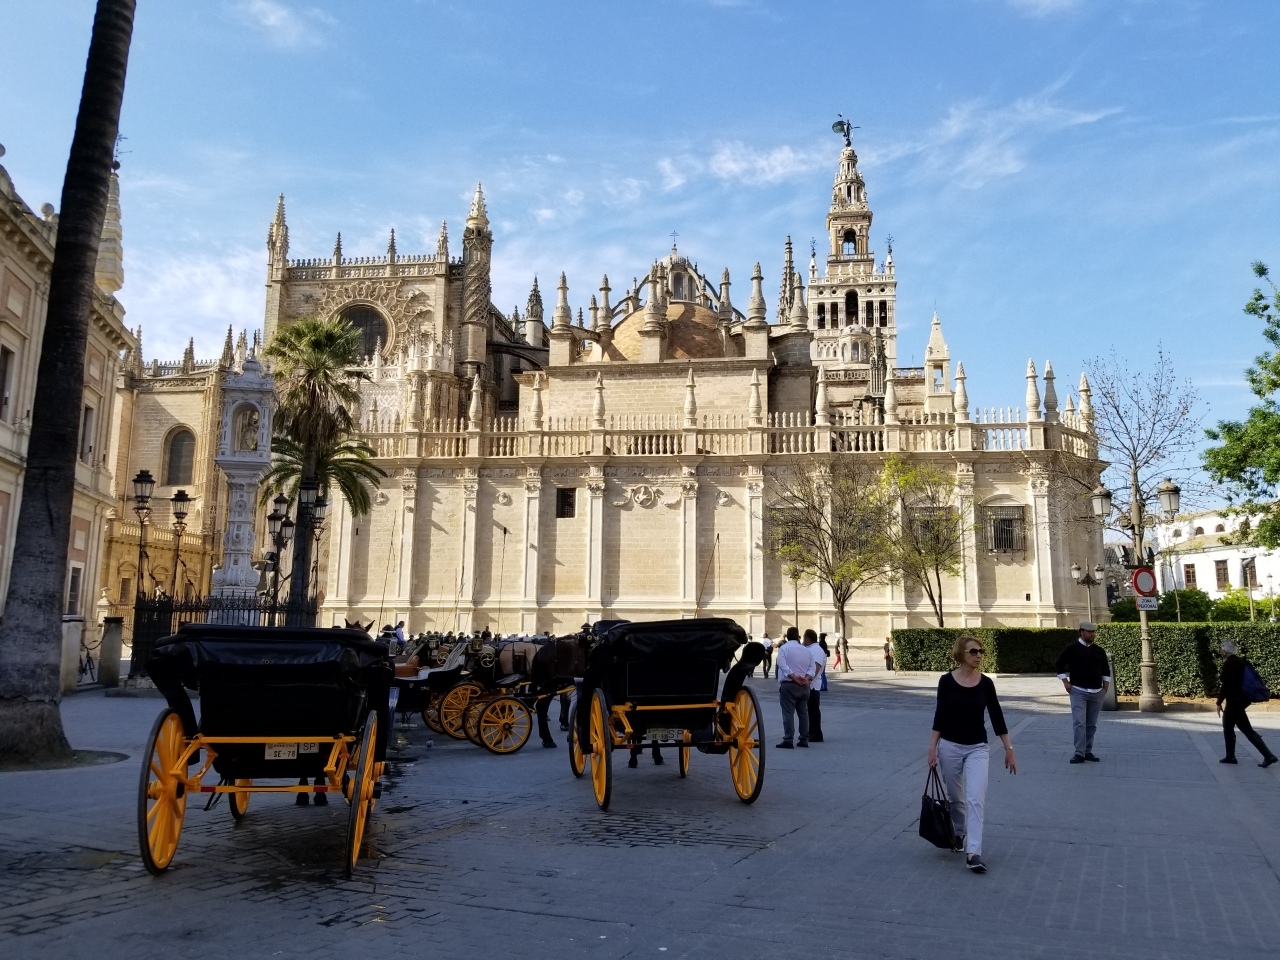 Day 2 of our whirlwind walking tour of Seville